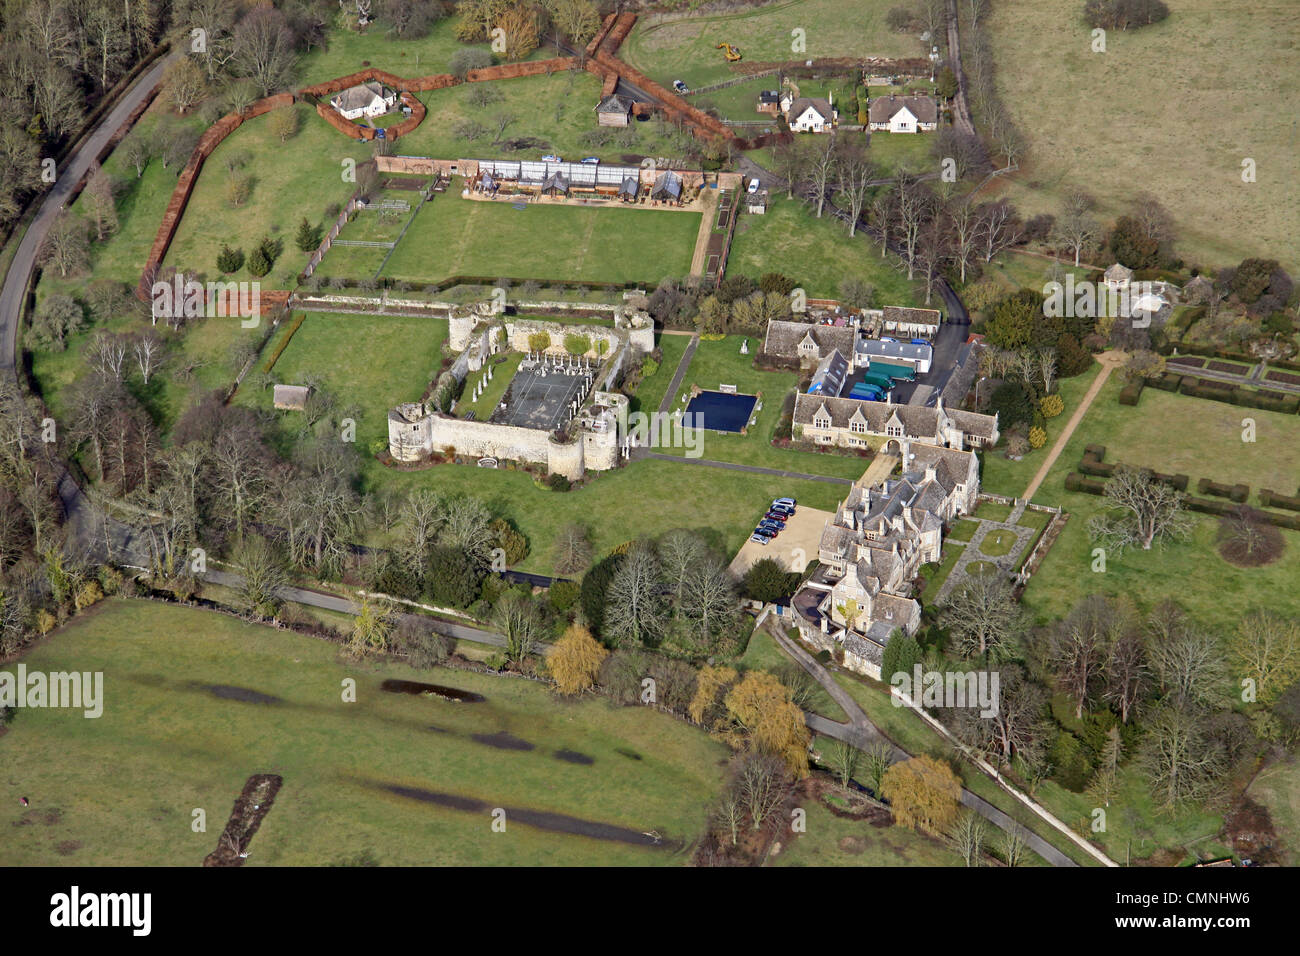 Aerial view of Oundle, Northamptonshire - Stock Image